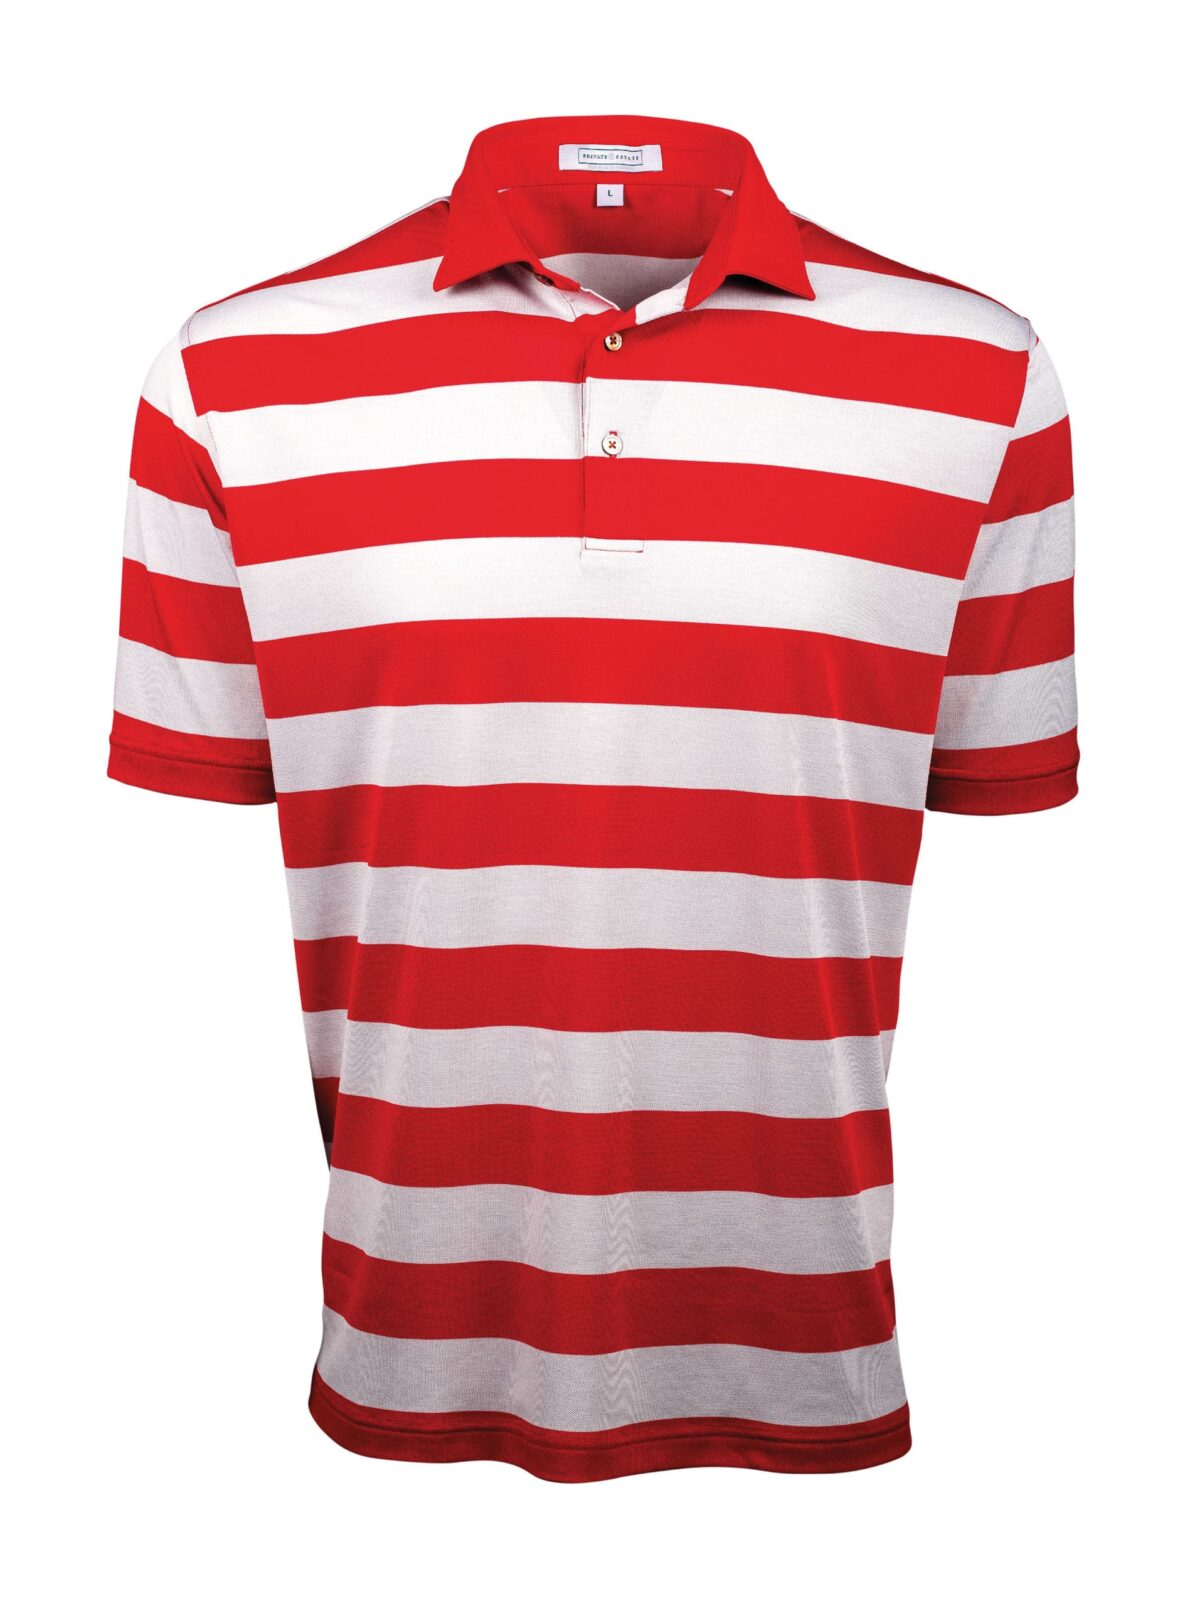 Fenix XCell PE Red and white Rugby Stripe Polo Shirt